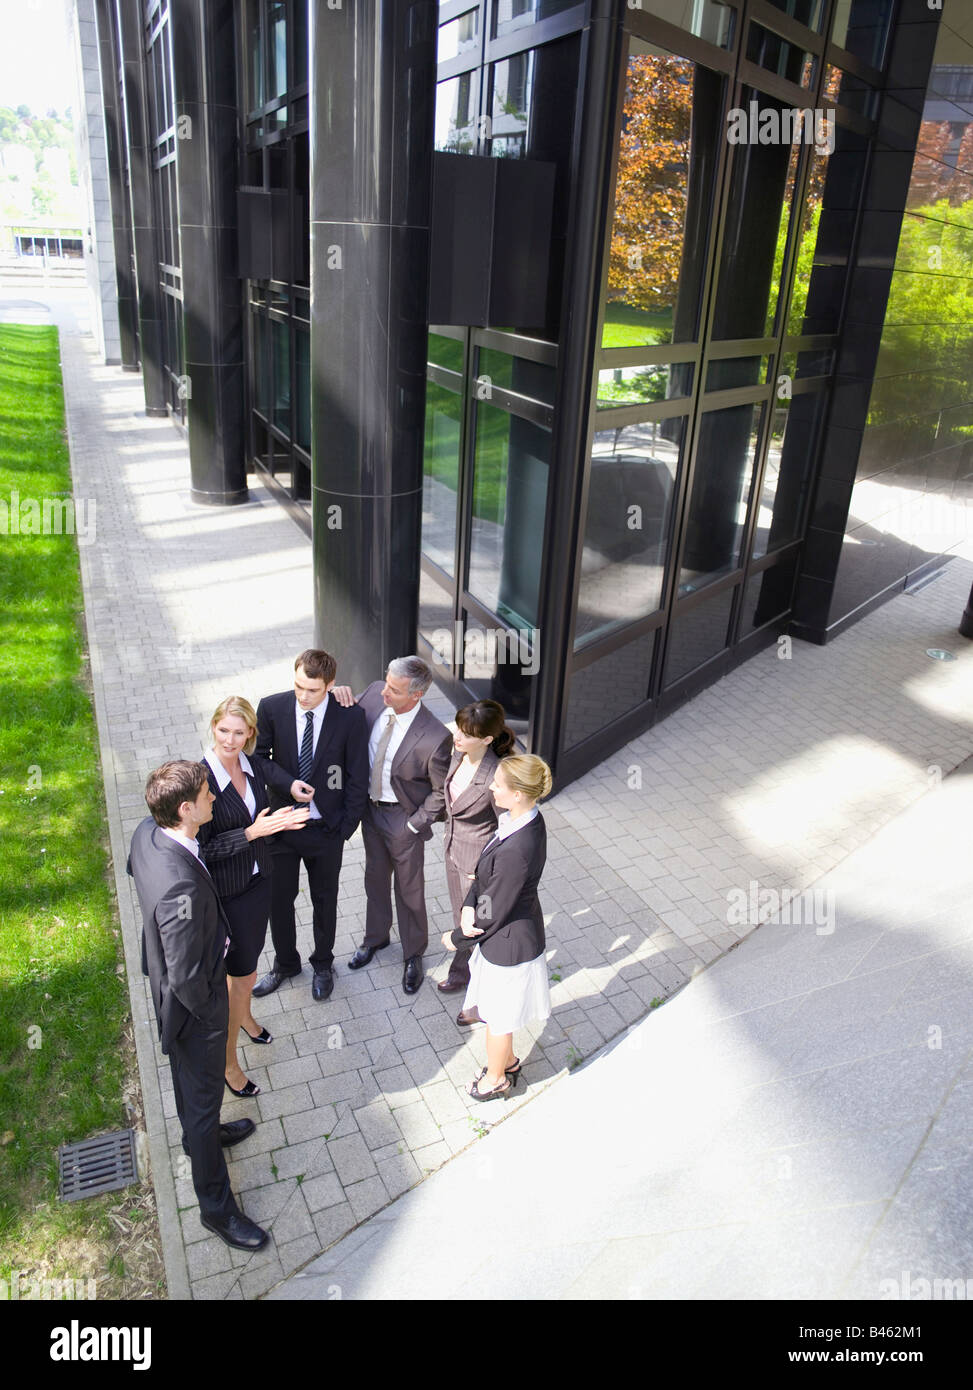 Germany, Baden-Württemberg, Stuttgart, Businesspeople talking, elevated view - Stock Image